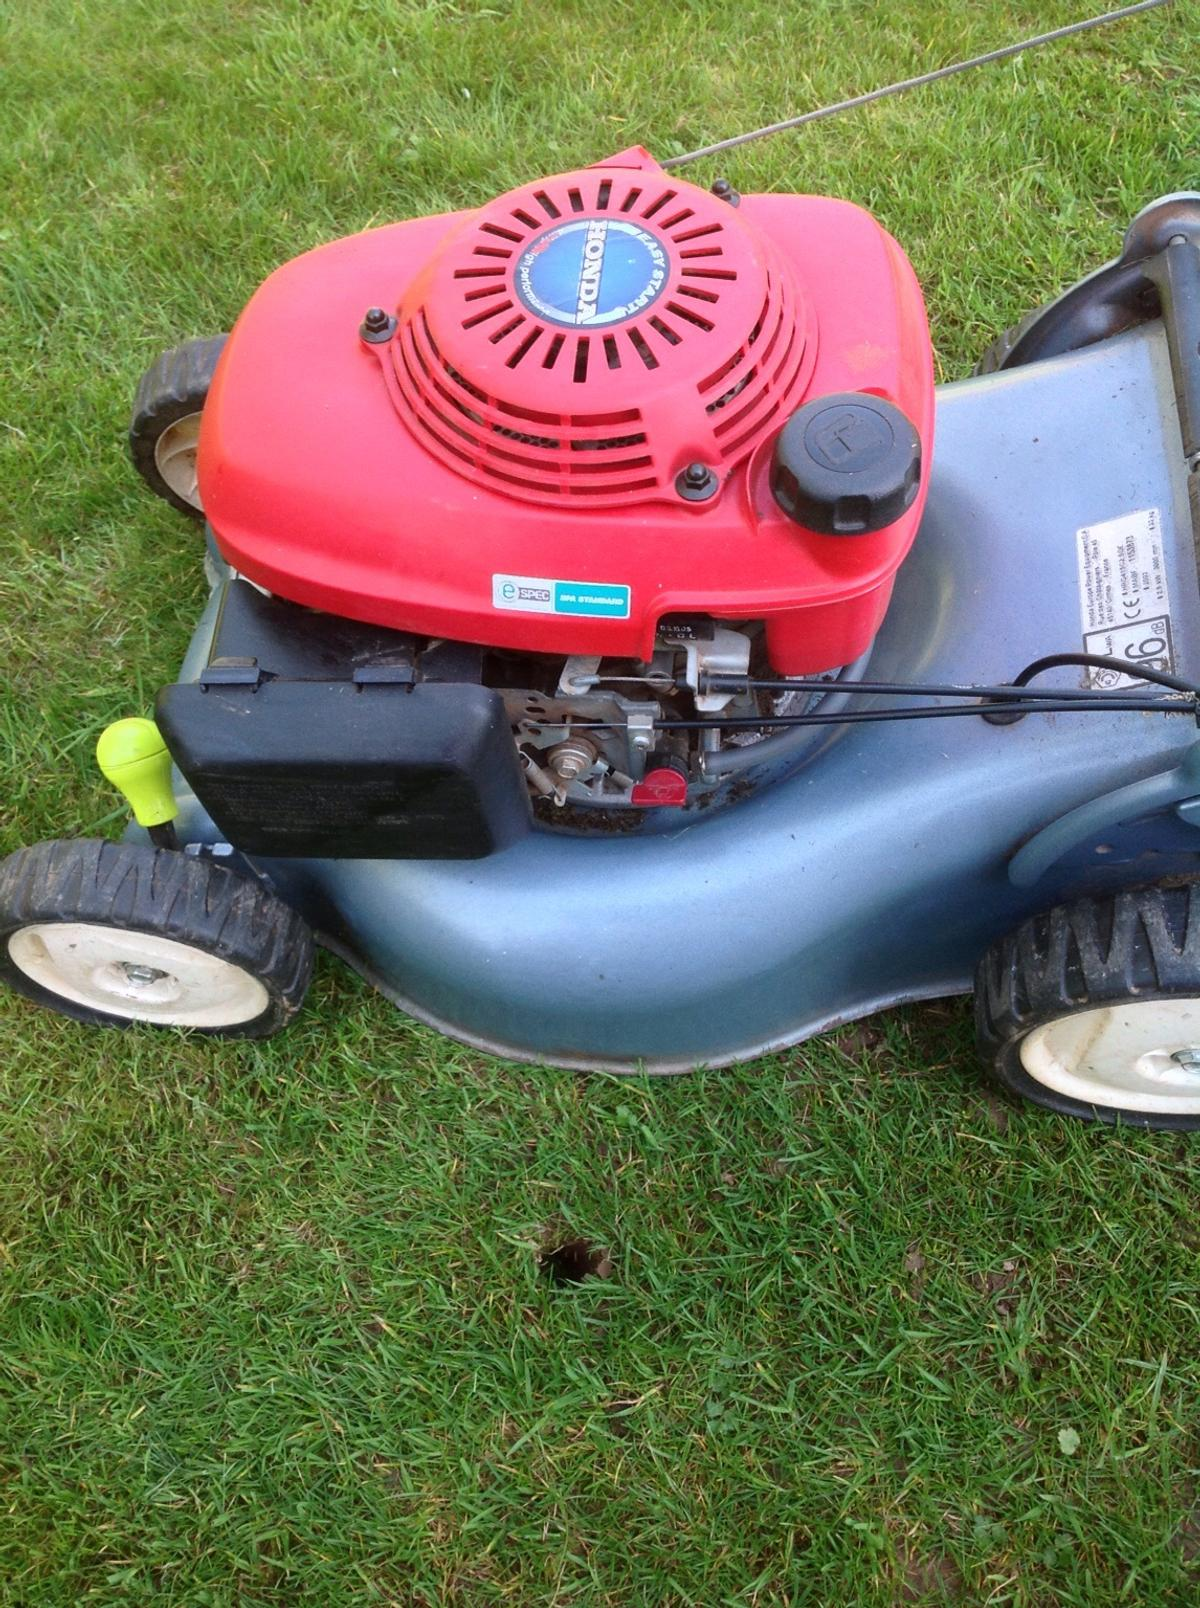 Honda Izy Lawnmower in B96 Redditch for £150 00 for sale